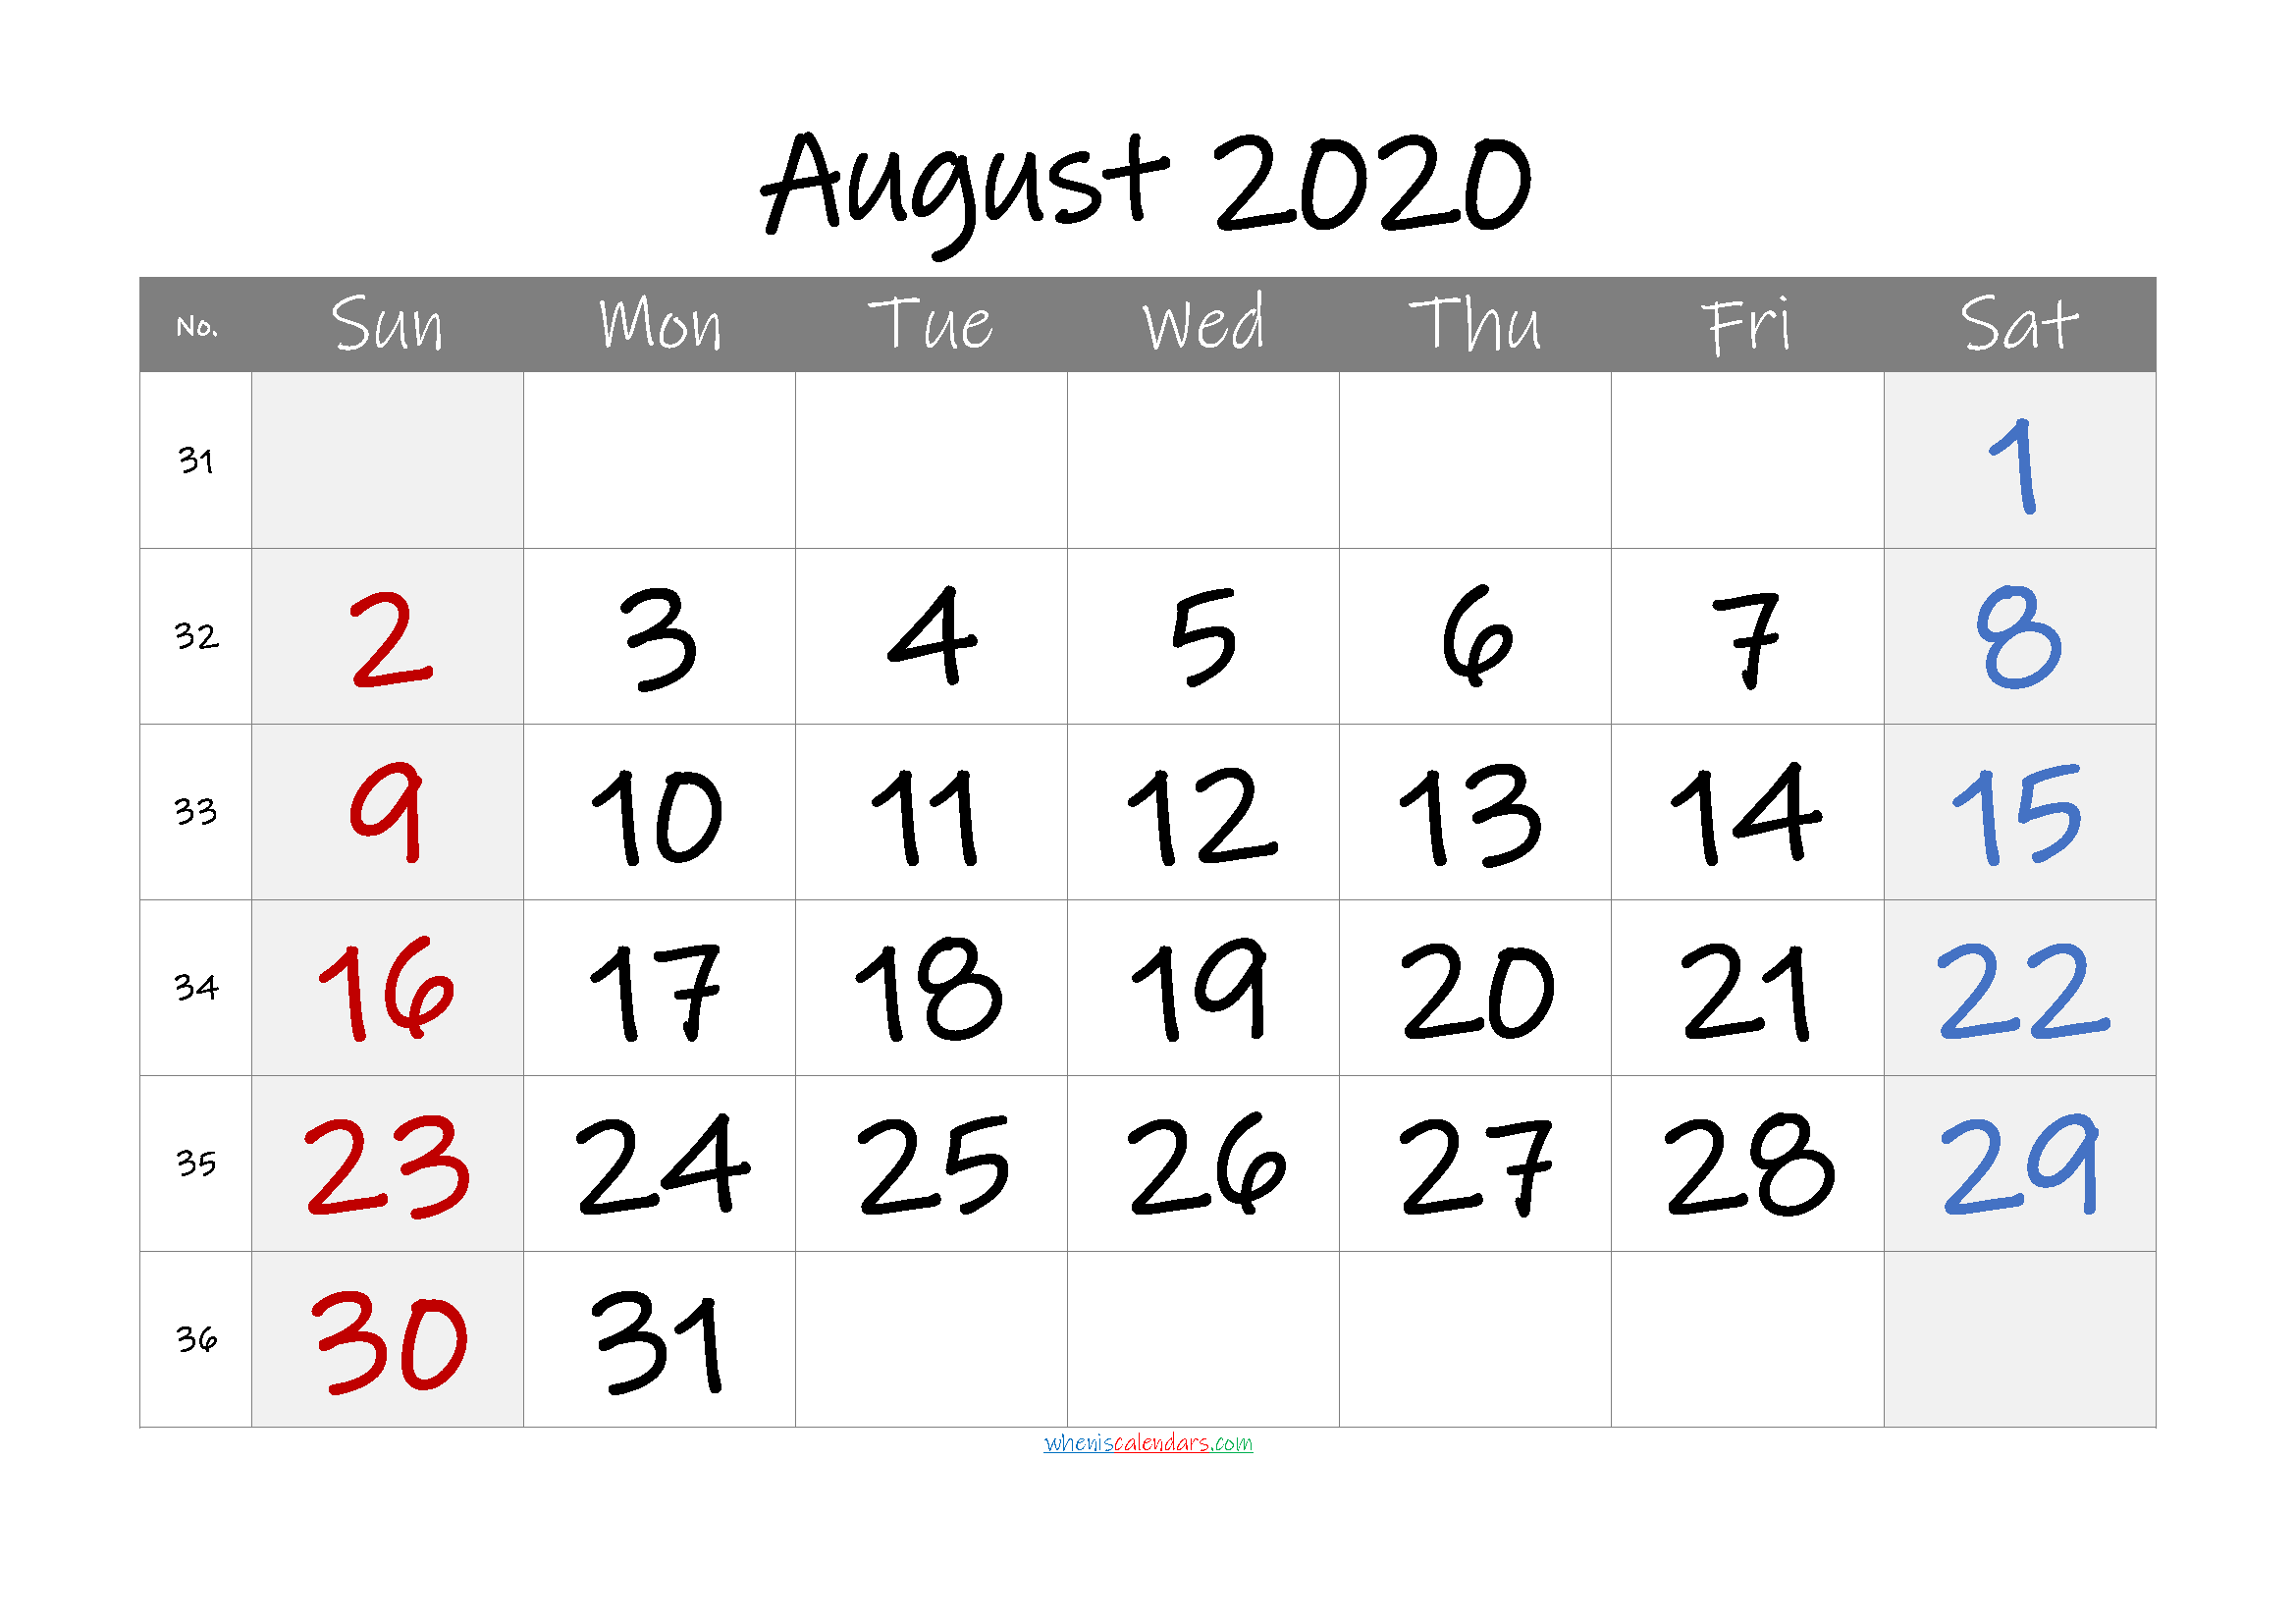 August 2020 Free Printable Calendar with Holidays